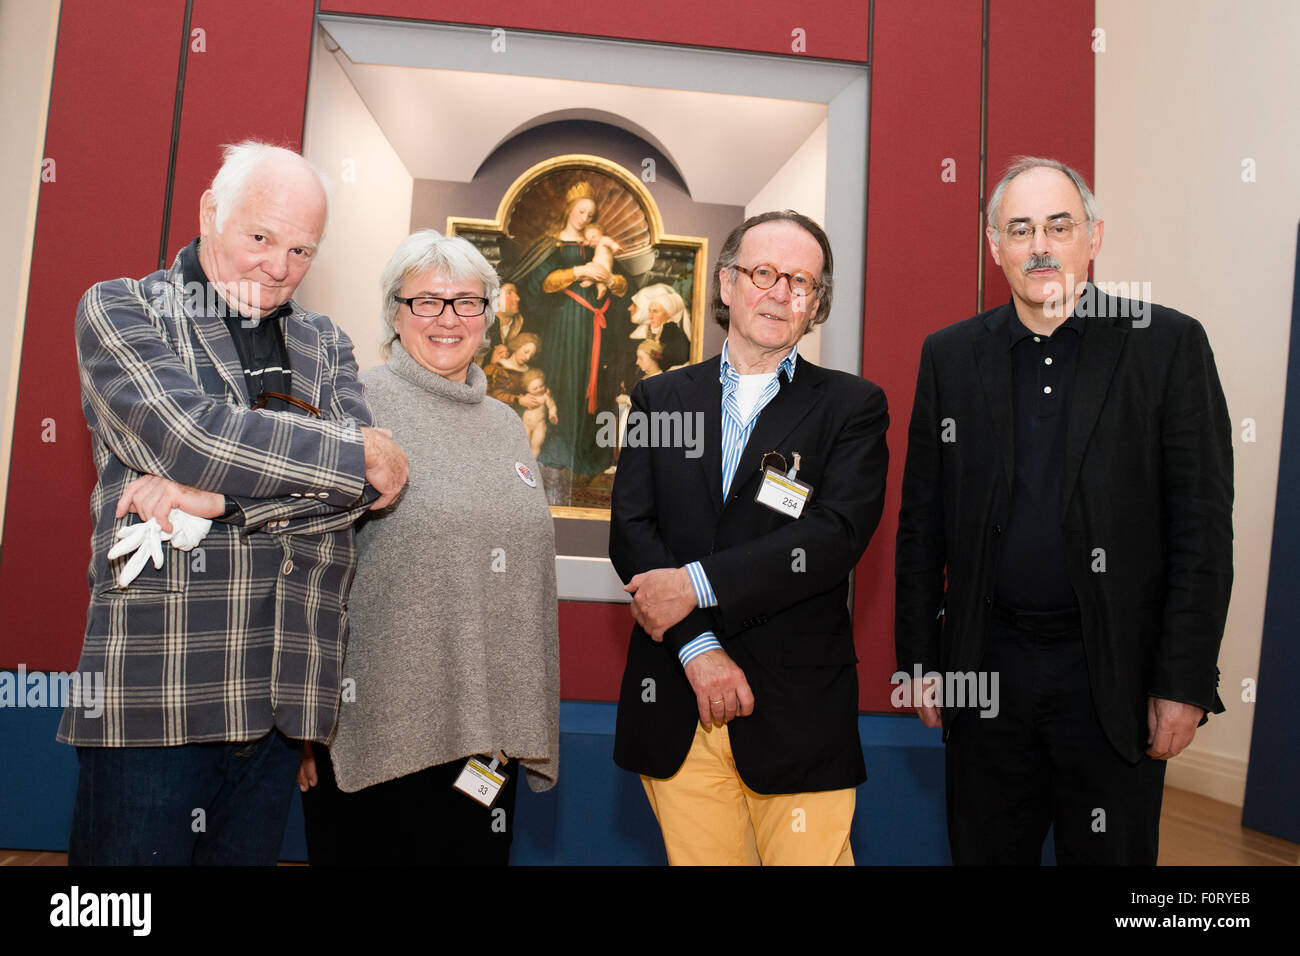 Peter klaus schuster immagini peter klaus schuster fotos stock alamy - Lavoro architetto berlino ...